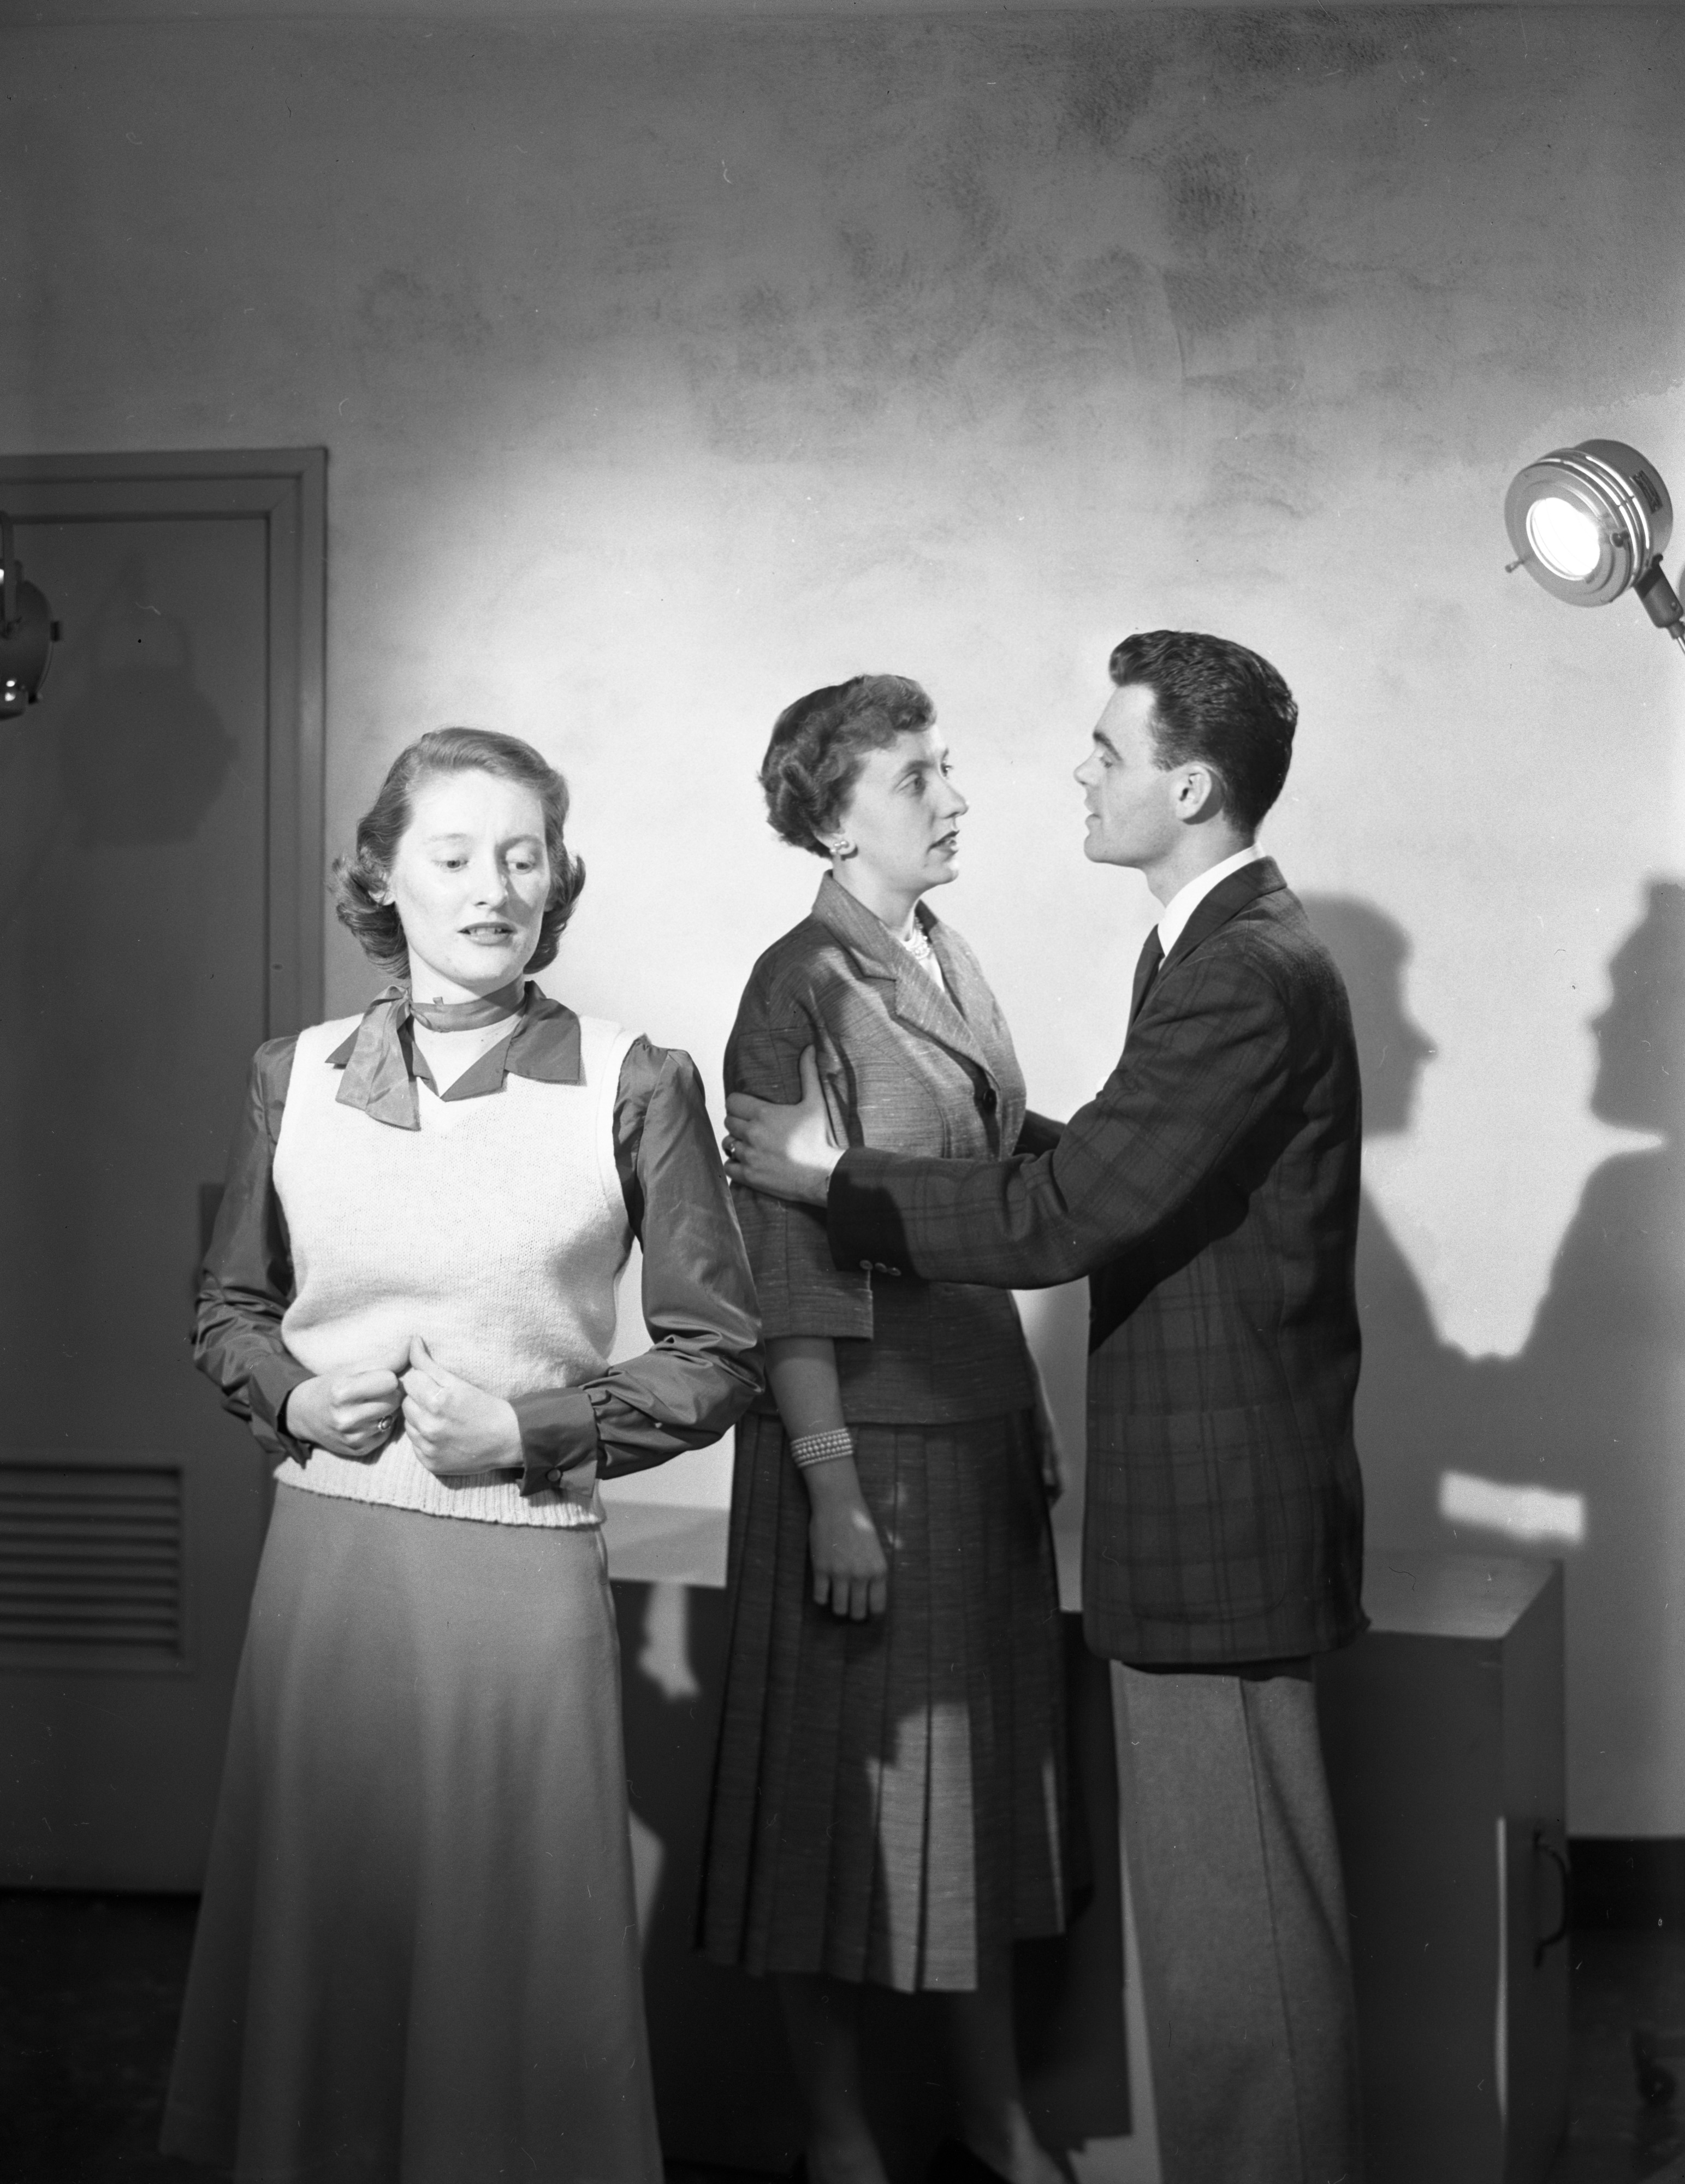 Ann Arbor Civic Theatre Cast Members Rehearse Scene from 'Holiday,' April 1952 image